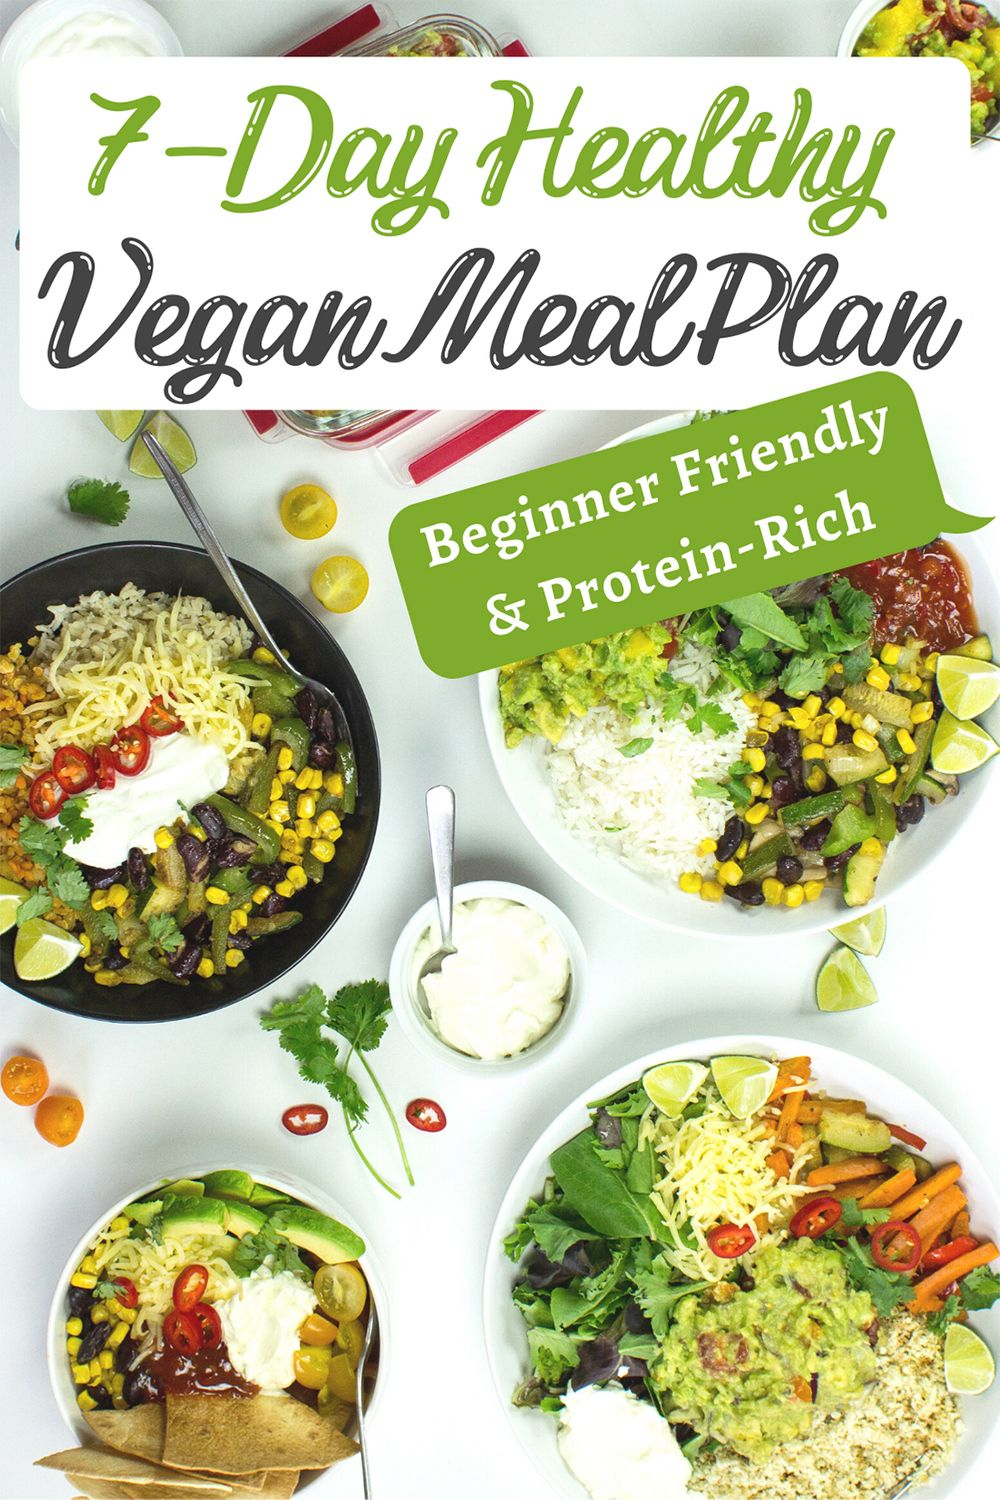 Get Our 7 Day Healthy Vegan Meal Plan Beginner Friendly Protein Rich Recipe In 2020 Vegan Recipes Healthy Vegan Meal Plans Healthy Vegan